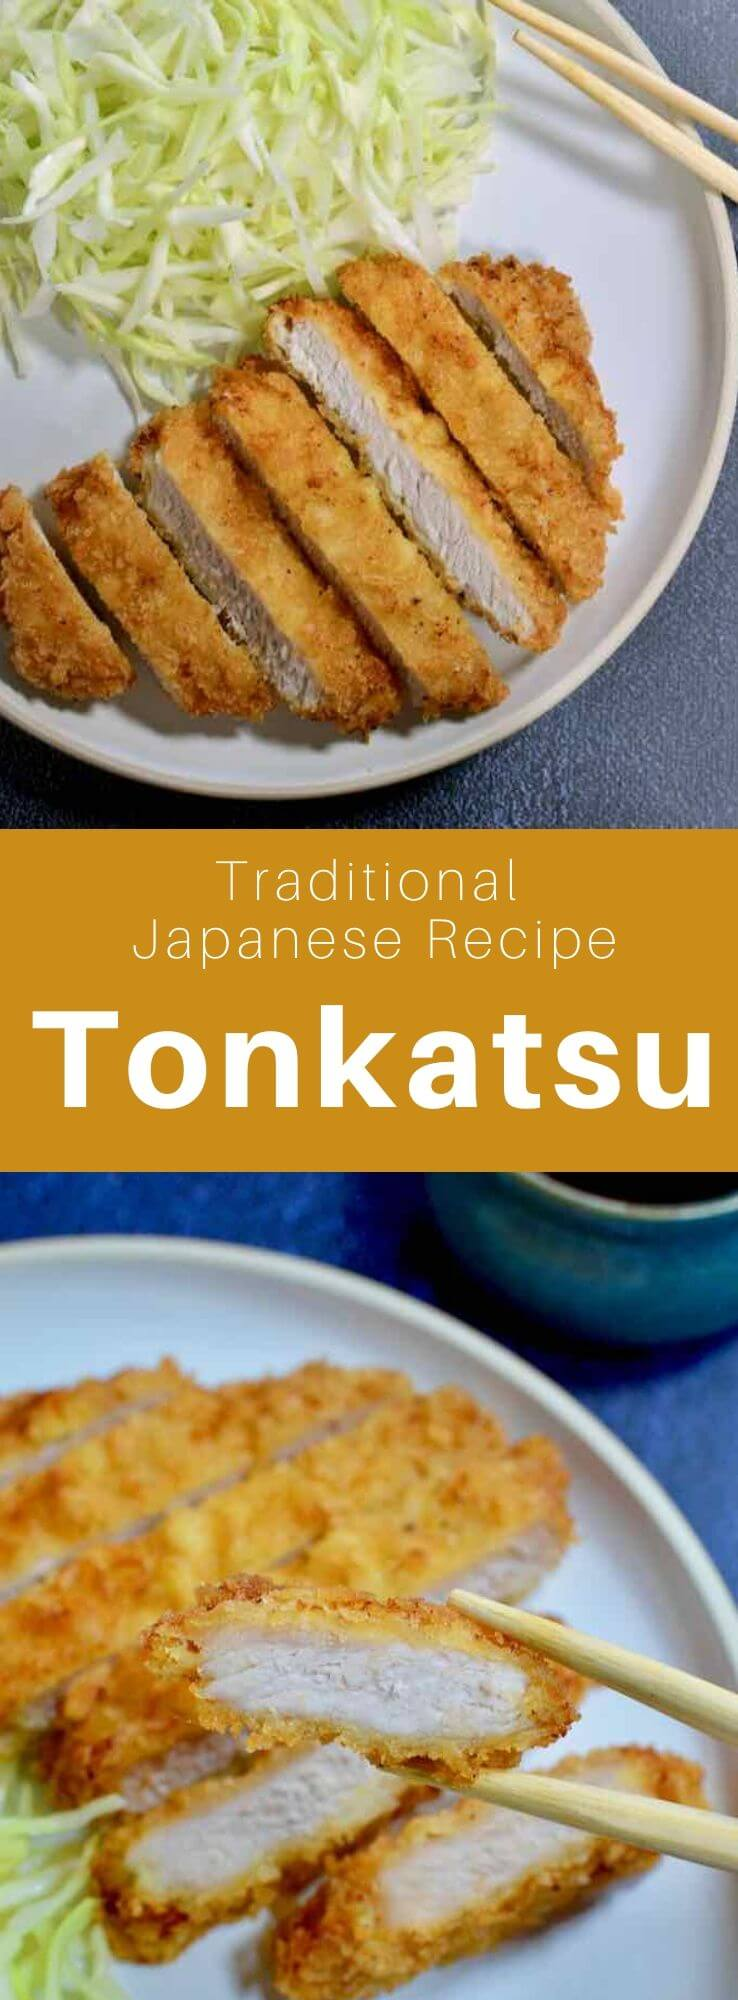 Tonkatsu (豚 カ ツ) is a delicious traditional Japanese dish that is prepared with breaded pork cutlets that are deeo-fried. #Japan #Japanese #JapaneseFood #JapaneseCuisine #JapaneseRecipe #AsianCuisine #AsianFood #AsianCuisine #WorldCuisine #196flavors